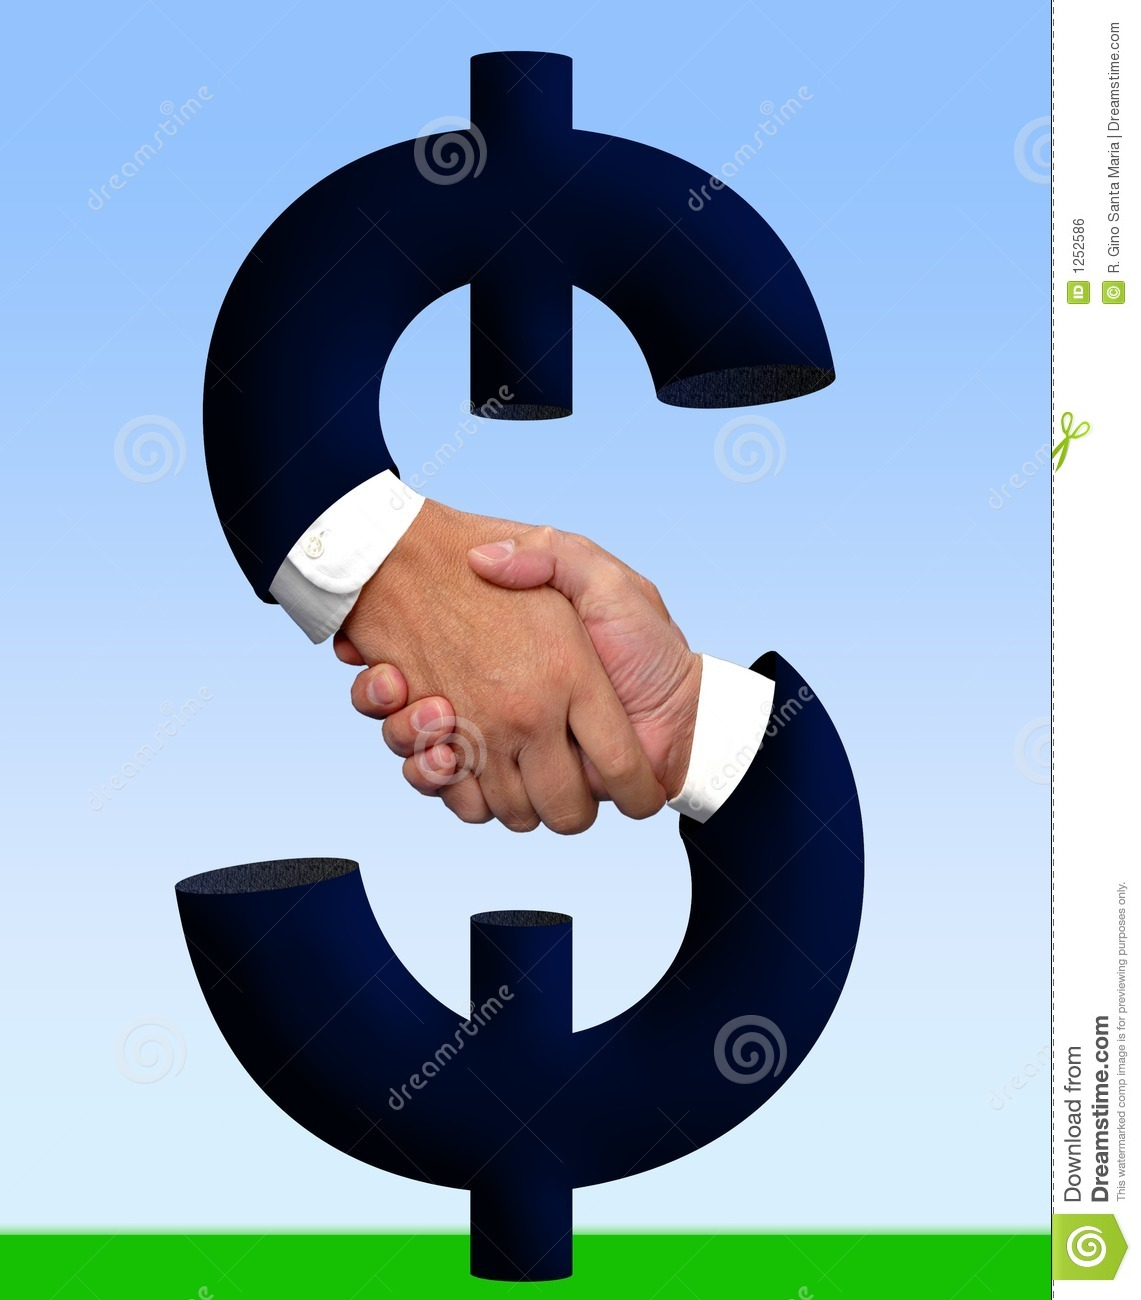 Royalty free stock image handshake with money sign with clipping